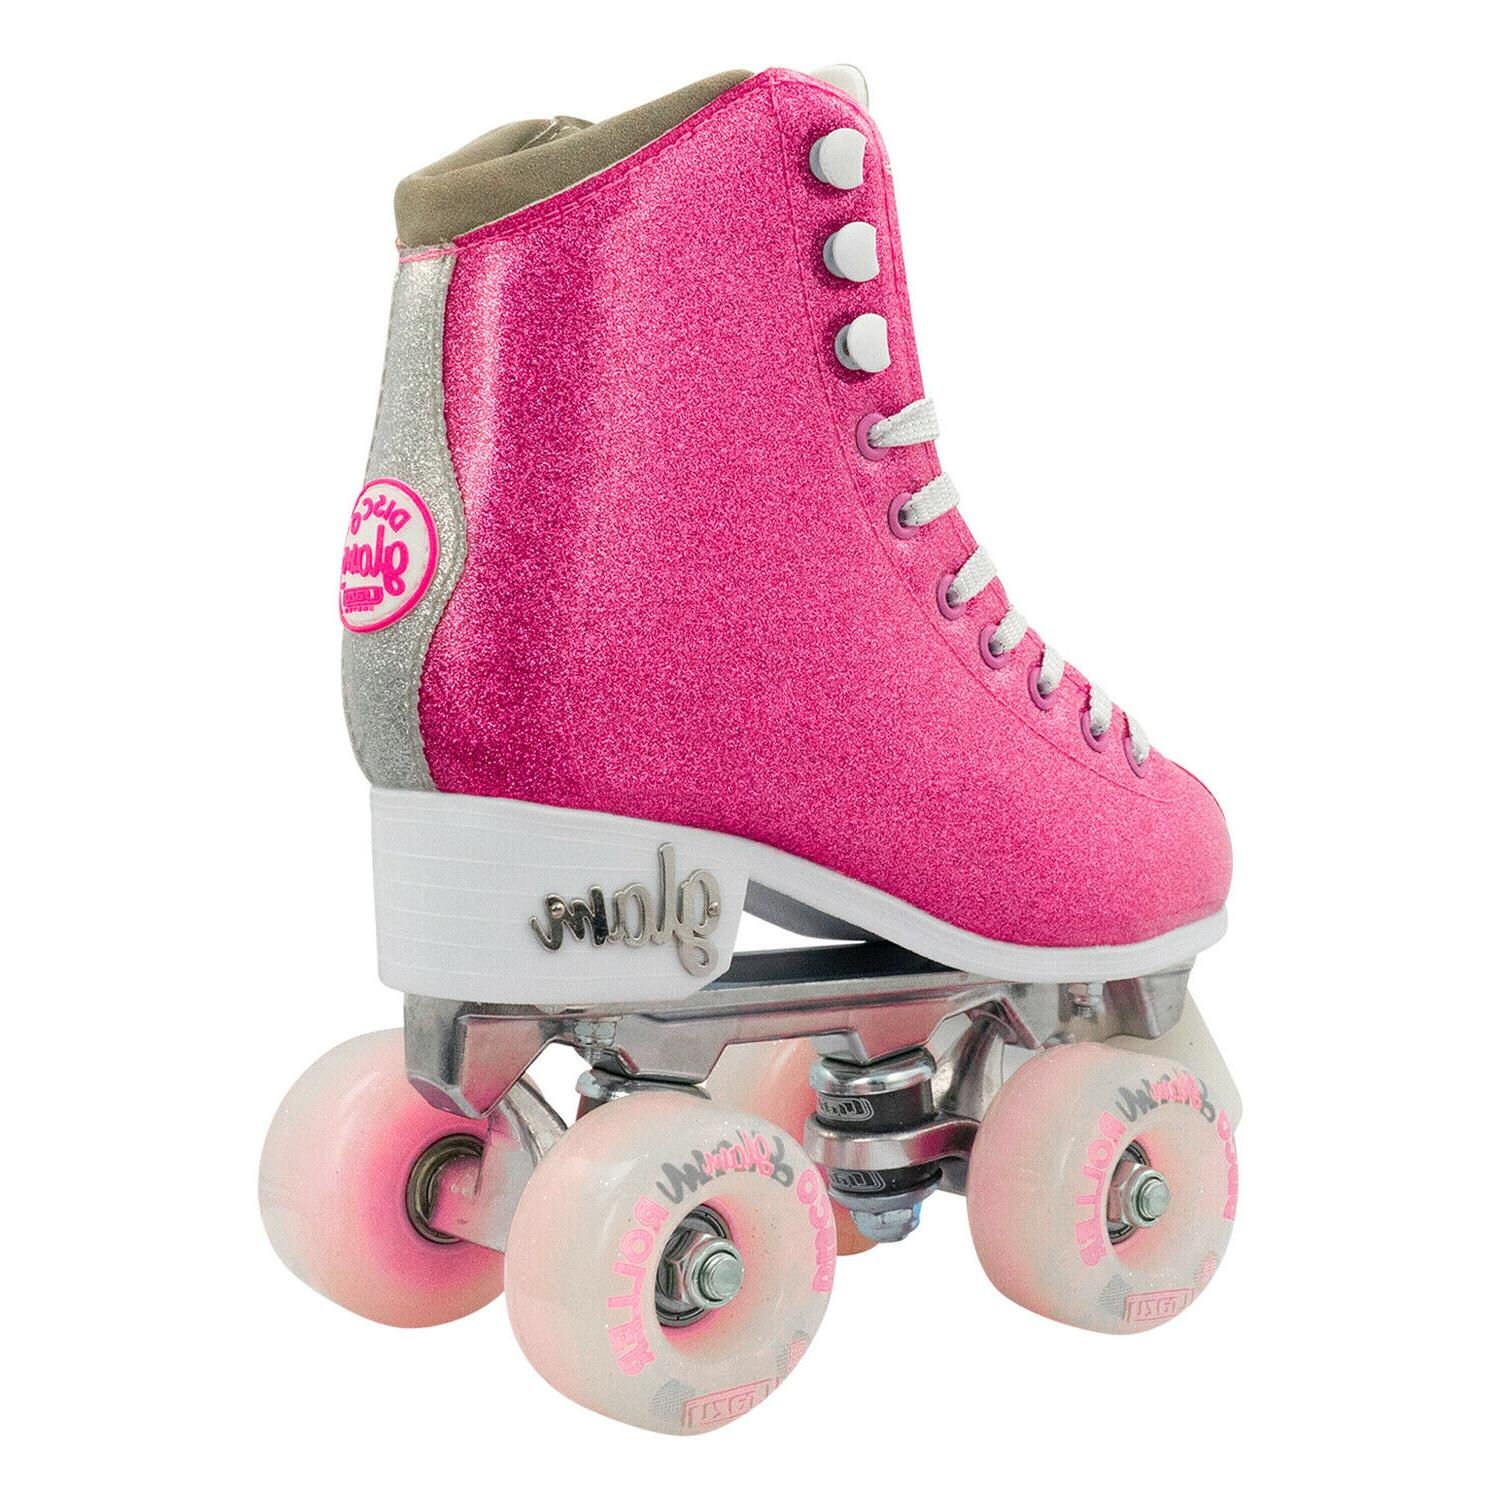 Glam by Crazy Skates Quad Rollerskates for |